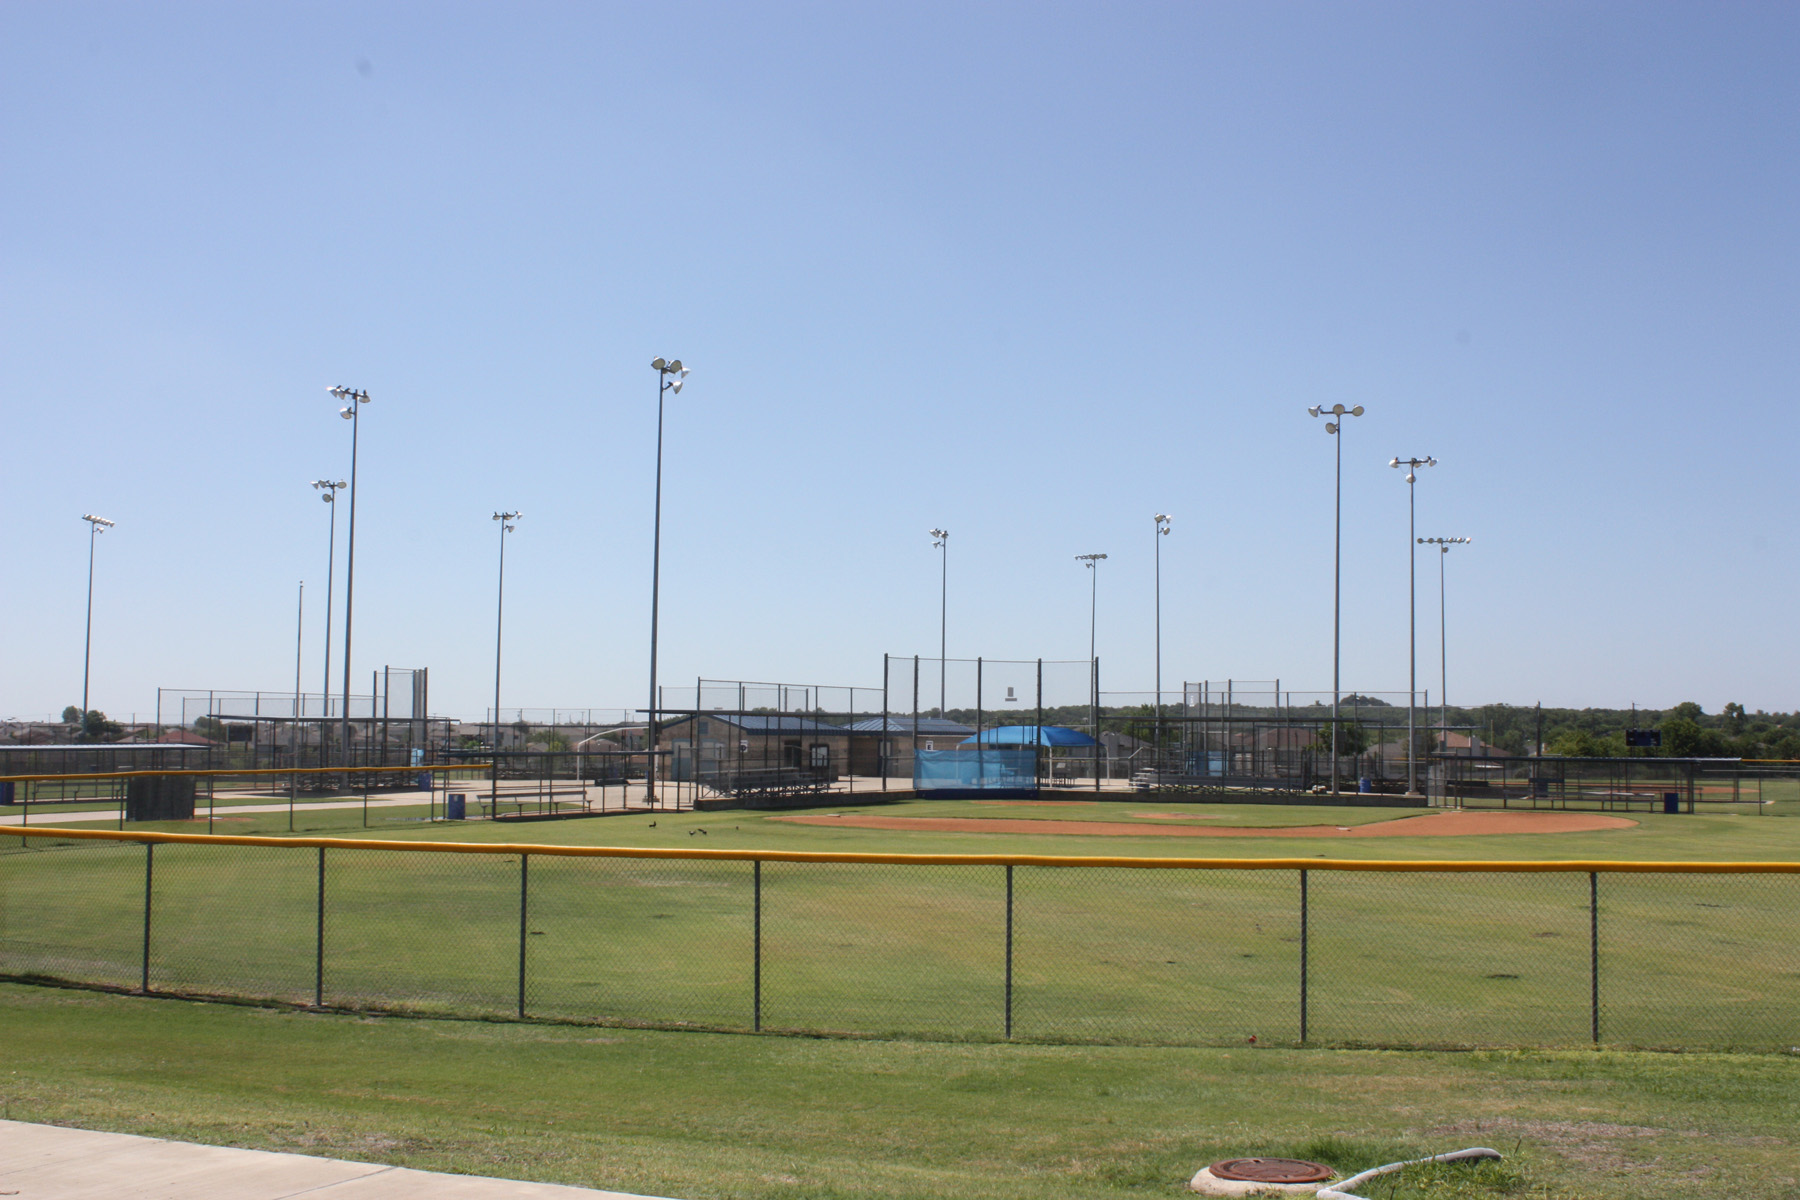 Killeen's Little League Baseball Fields (4)